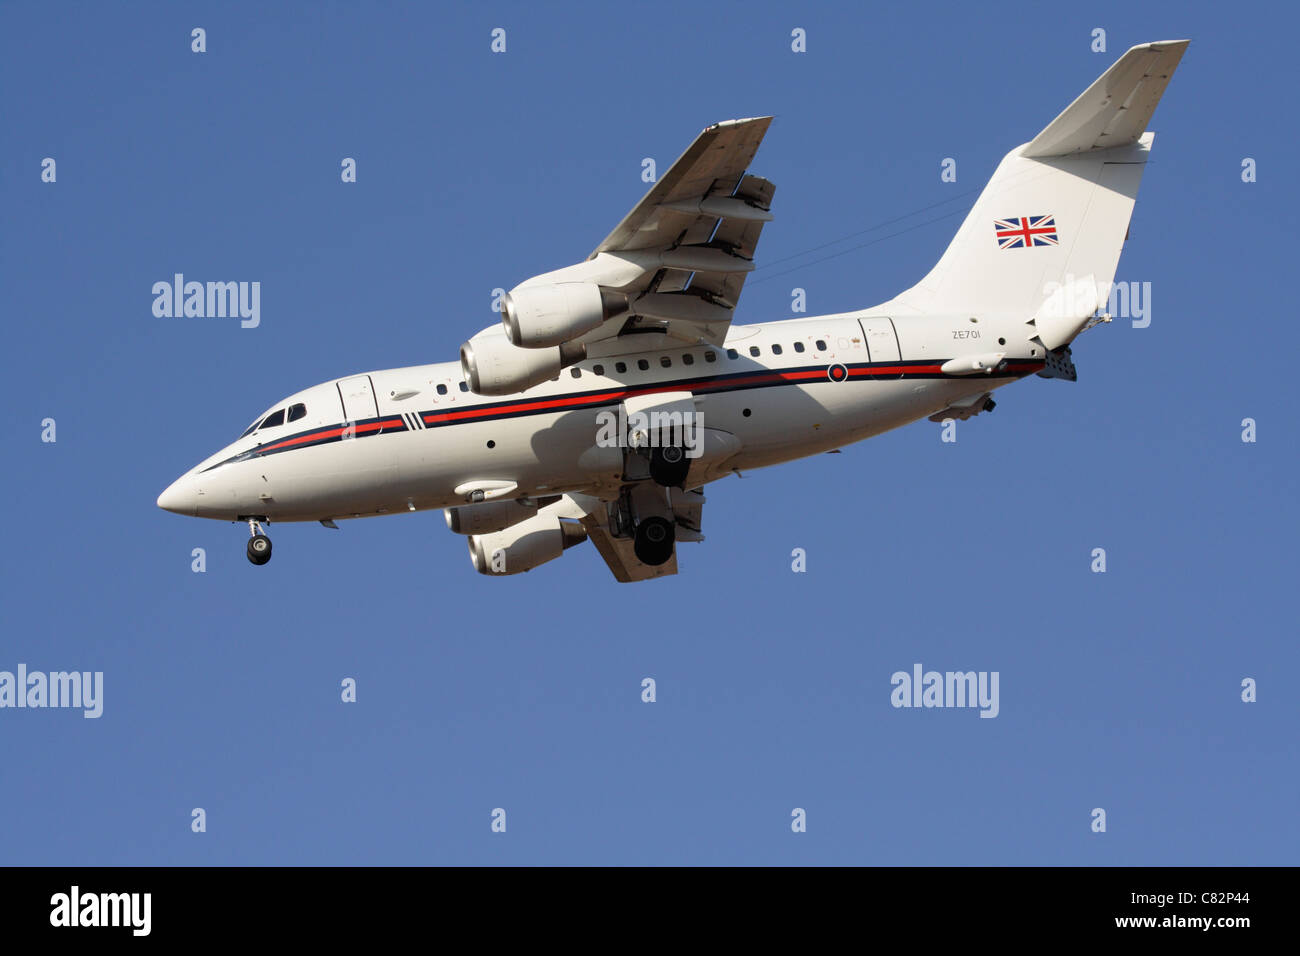 Royal Air Force BAe 146 executive transport making a steep landing approach - Stock Image